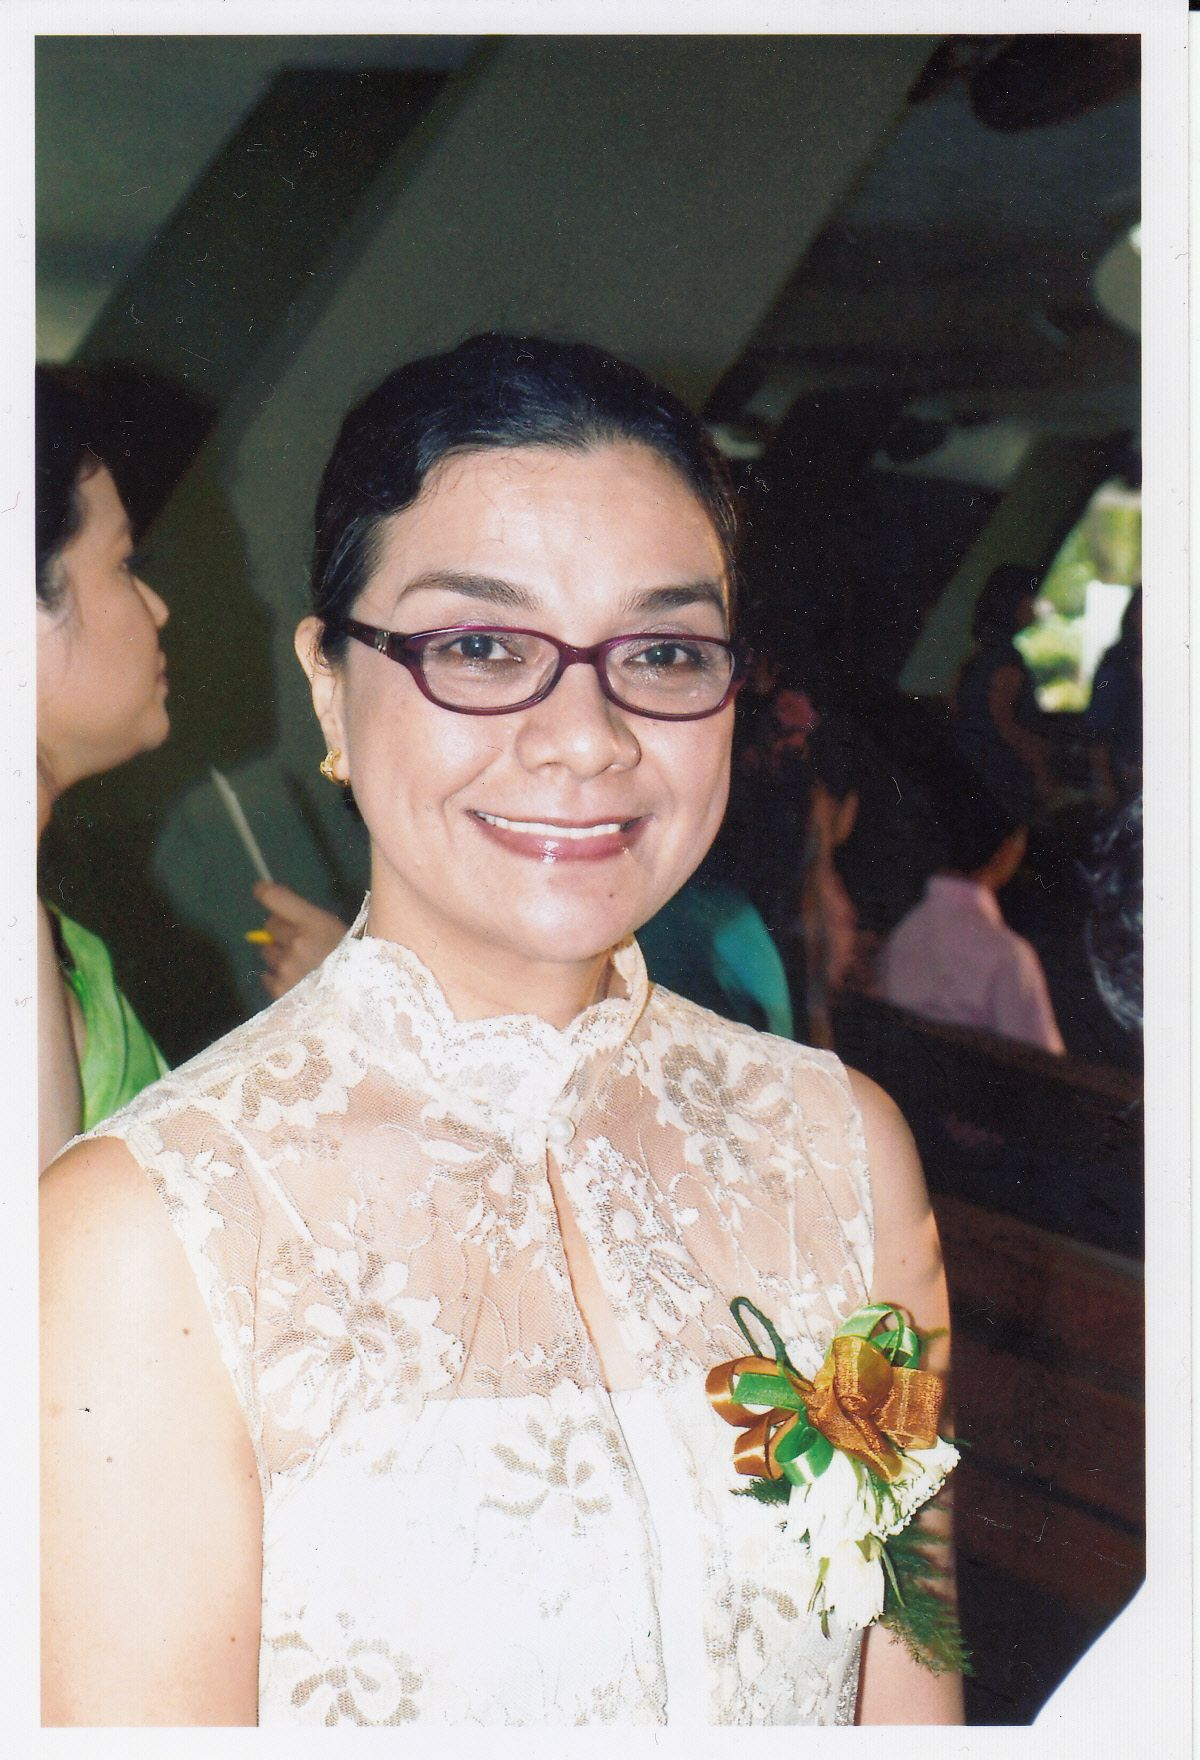 Principal Sponsor Ninang Gown Simple Style Principal Sponsors Gown Gowns Formal Attire